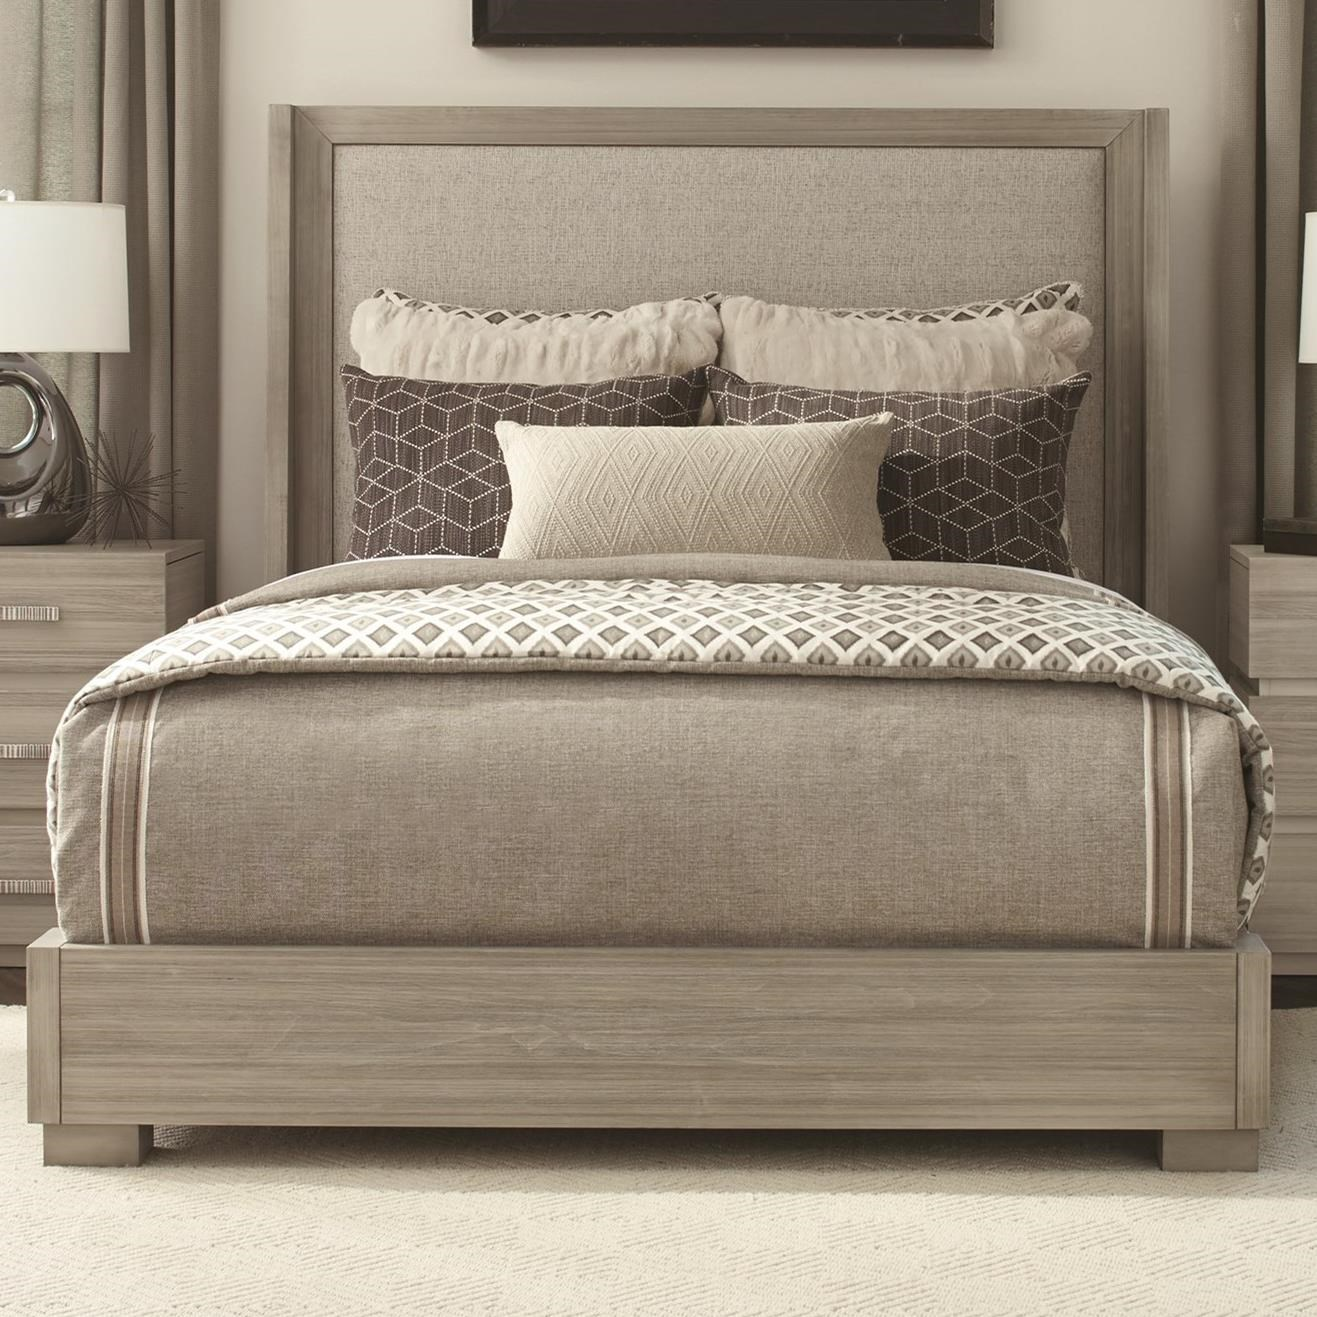 Modern Simplicity King Upholstered Bed by Durham at Stoney Creek Furniture